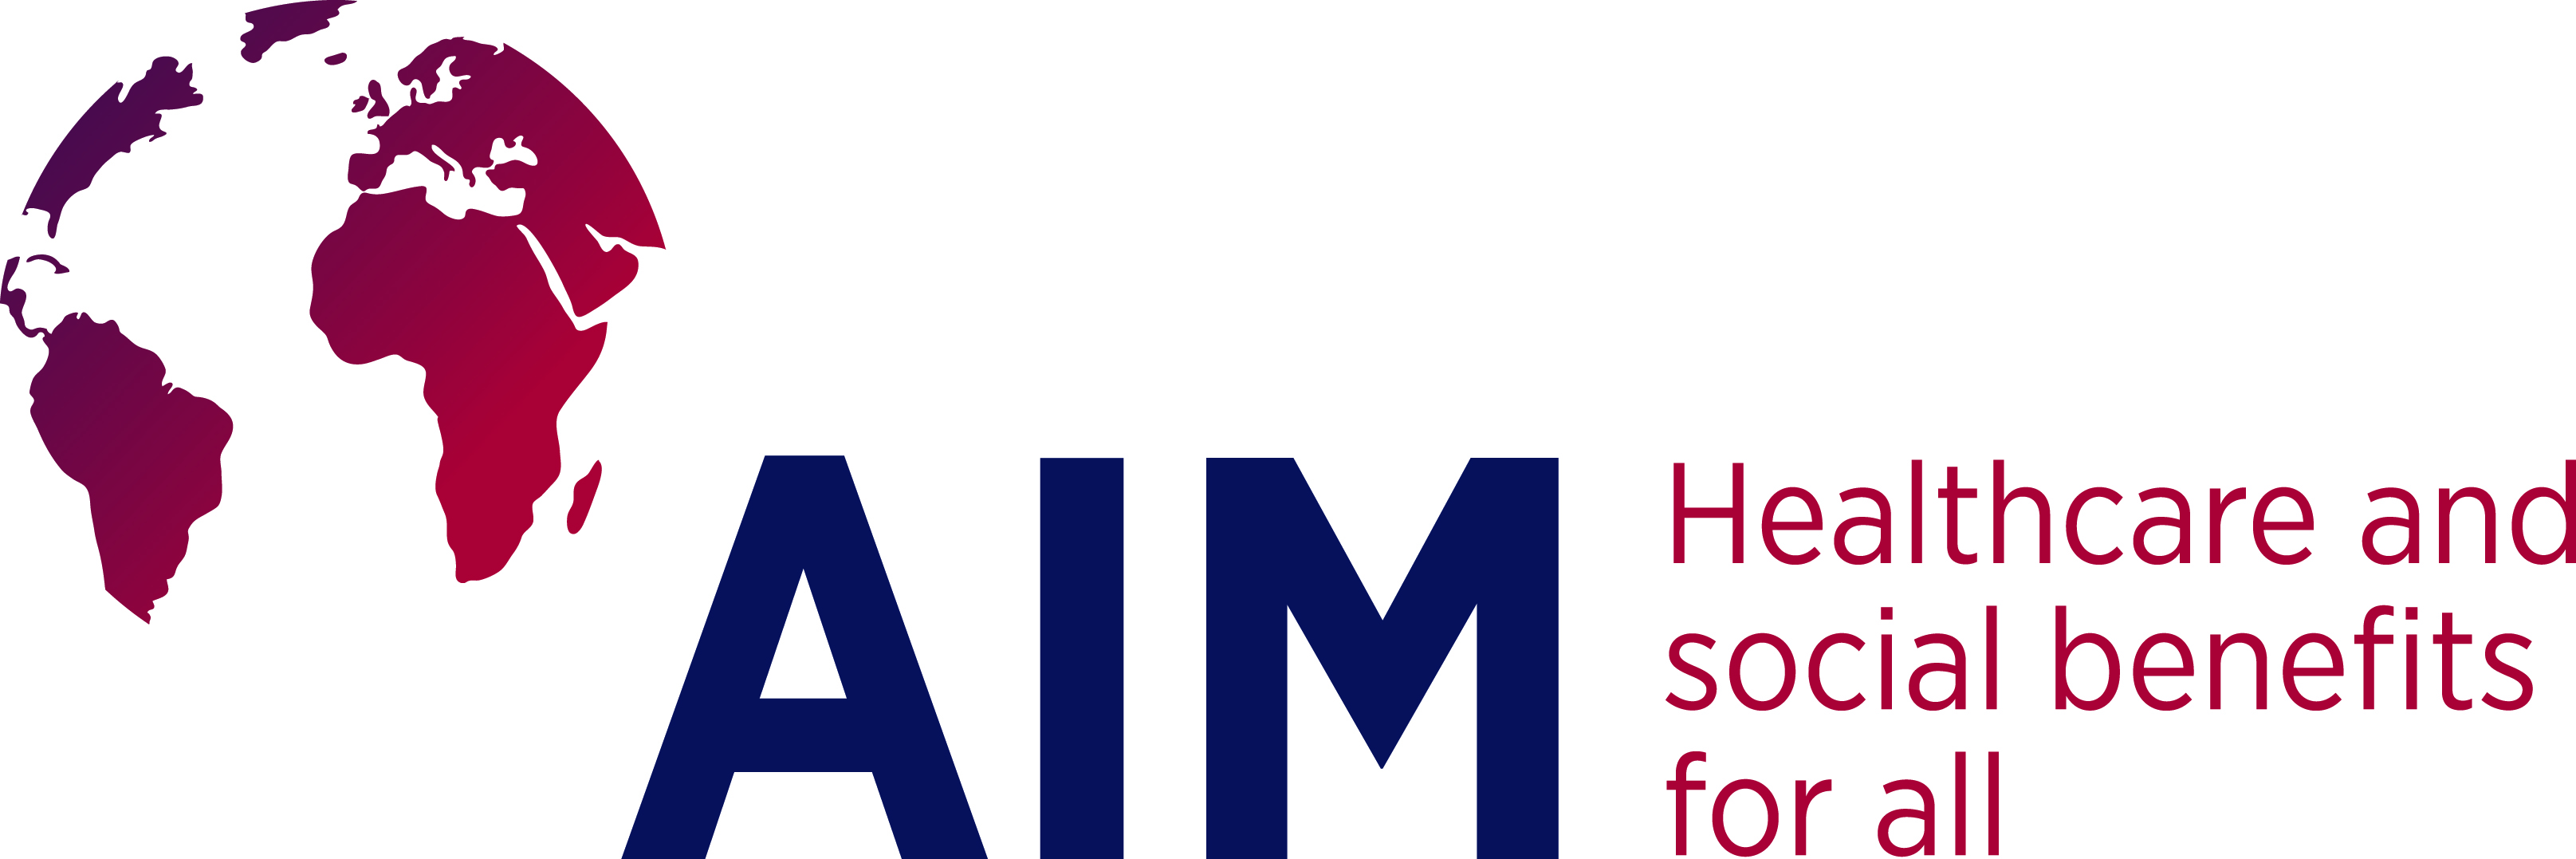 Logo AIM Association Internationale de la Mutualité, Healthcare and social benefits for all Internationaler - Verband der Krankenkassenverbände und Krankenversicherungen auf Gegenseitigkeit